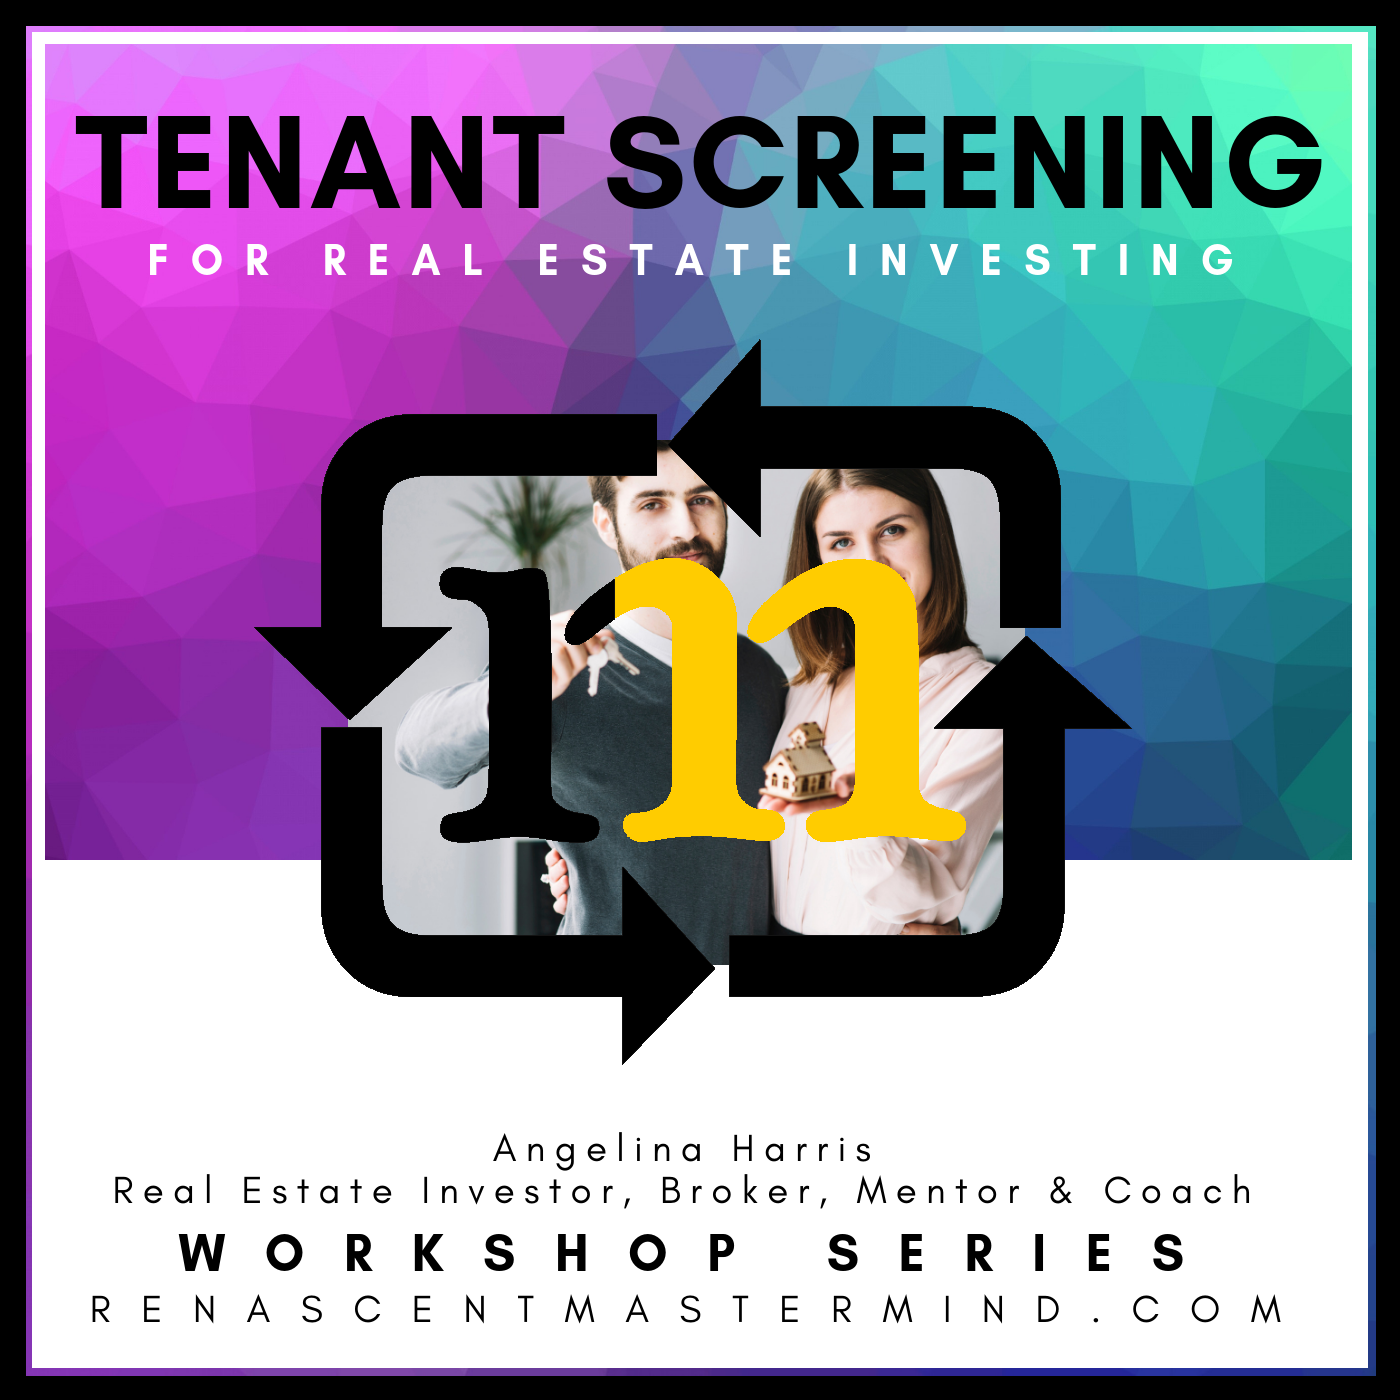 enant Screening | Workshop Series  with Angelina Harris, Real Estate Investor, Broker, Mentor & Coach